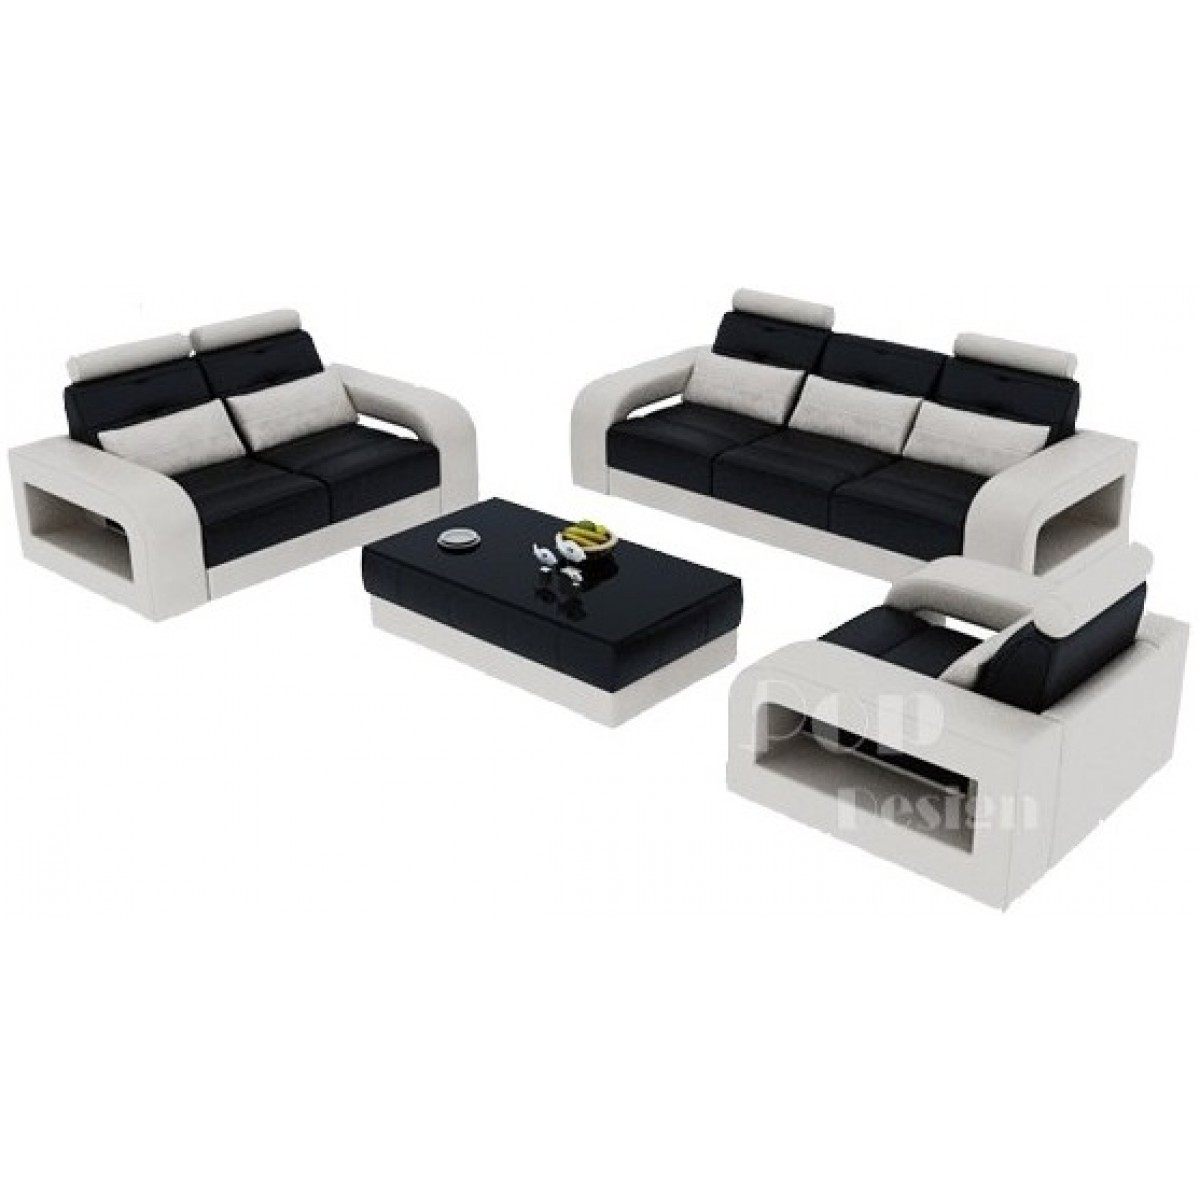 Salon set canap s personnalisable en cuir design salerno pop - Canape en cuir design ...